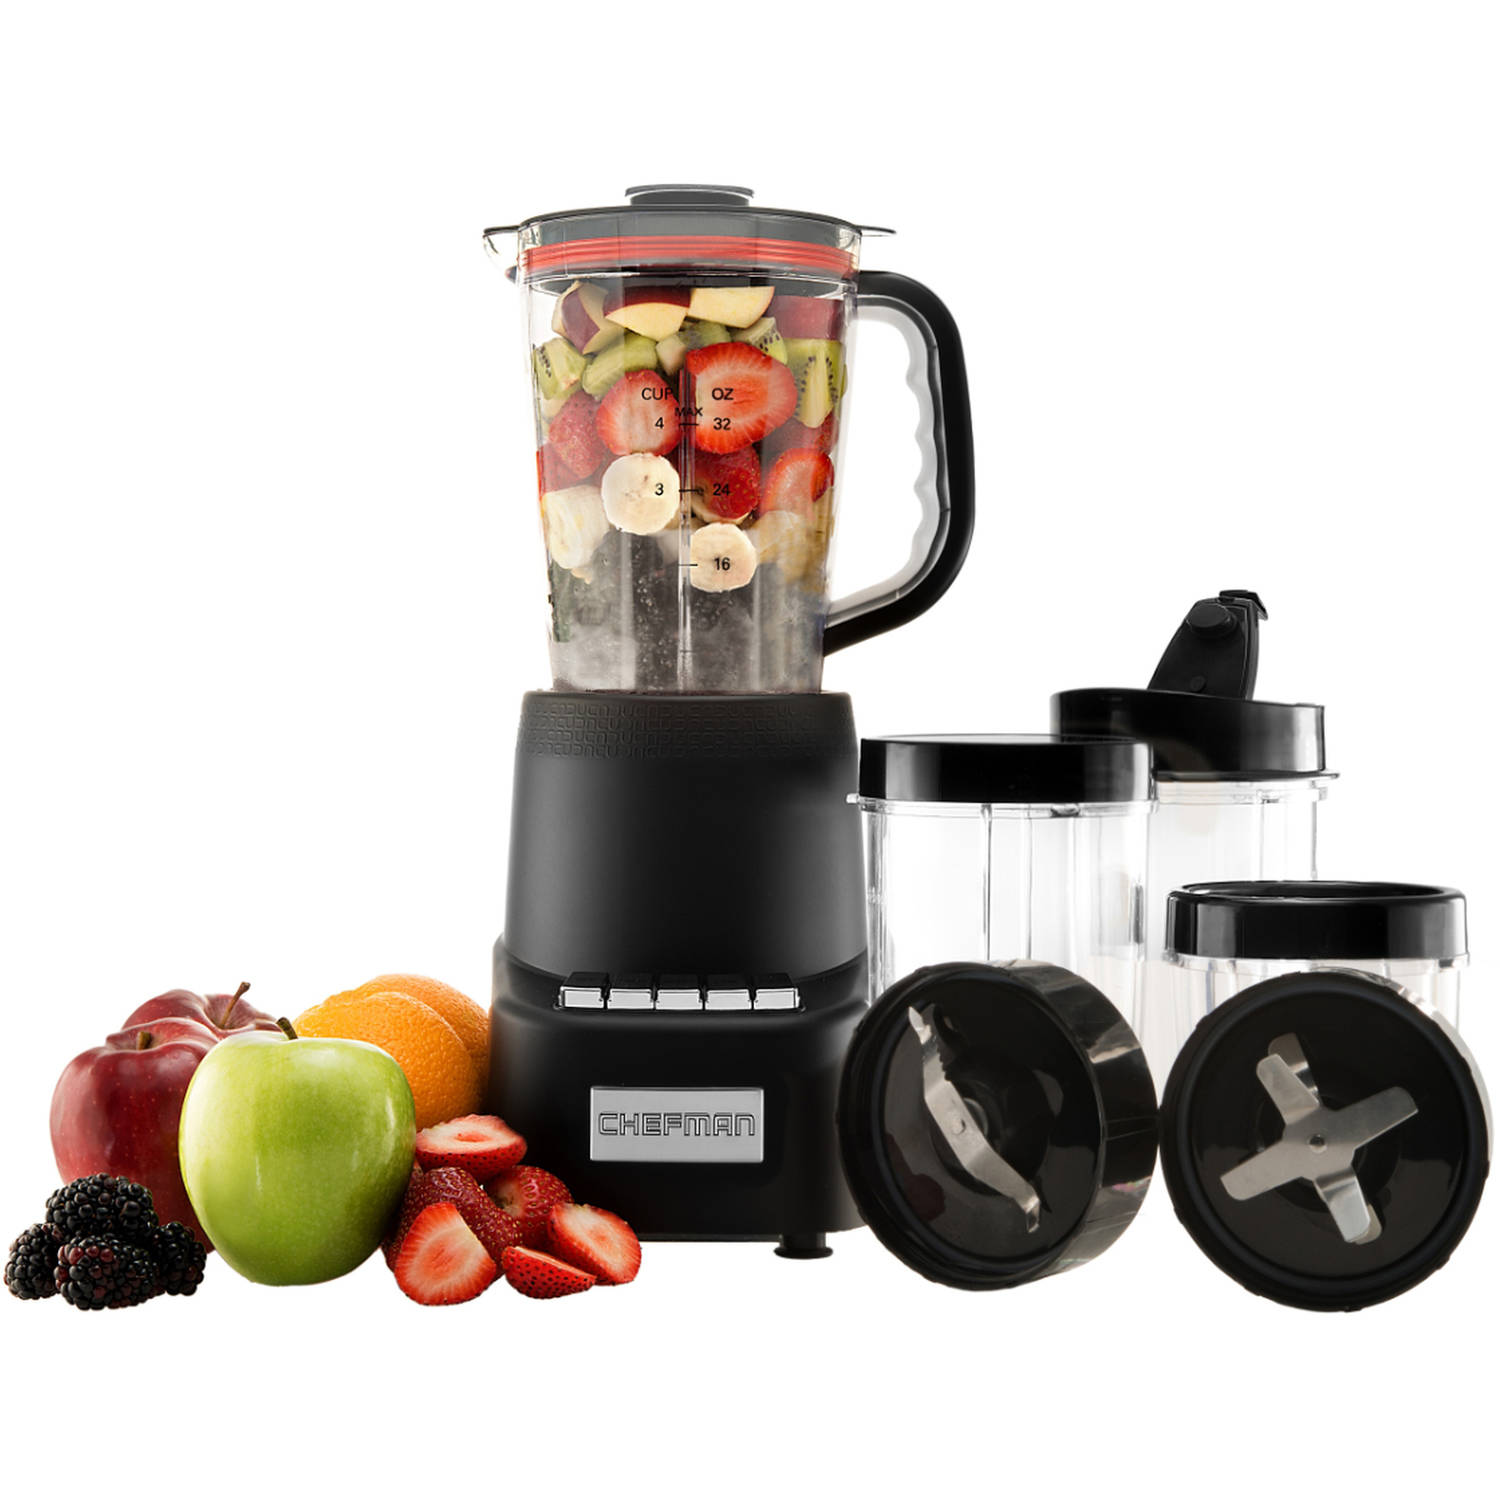 Chefman 700W Dynamic Blending System